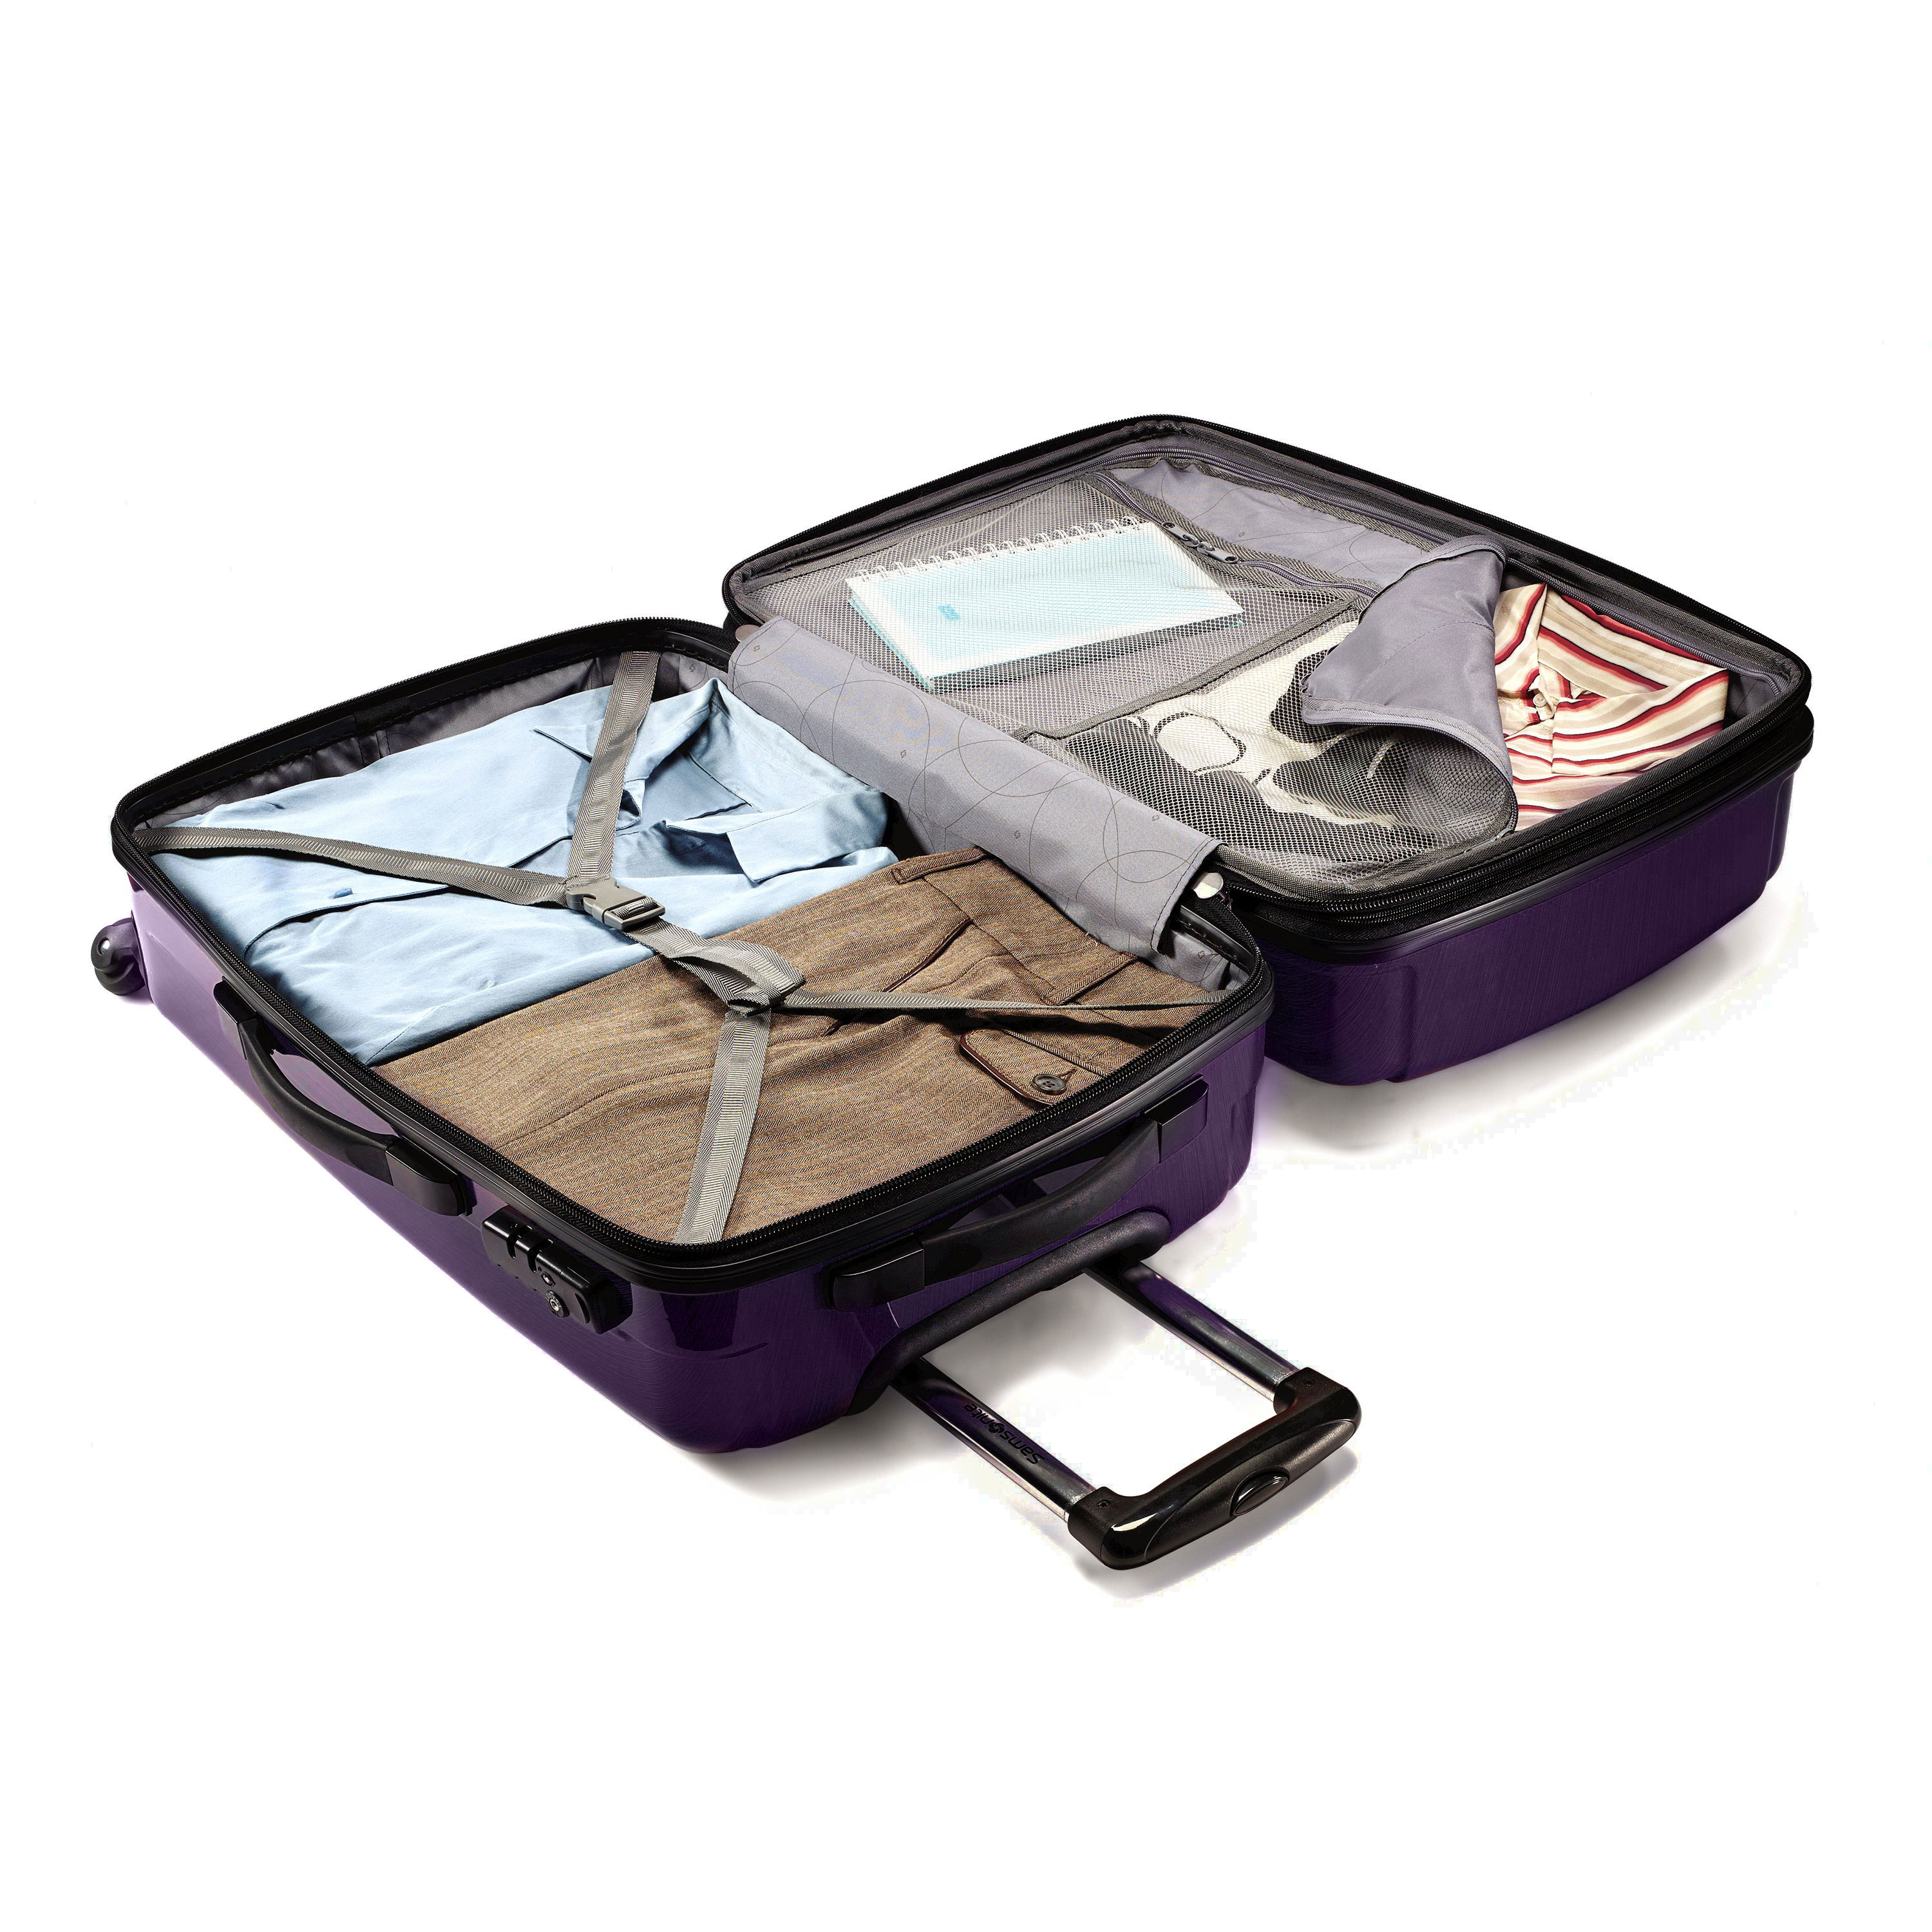 Samsonite-Winfield-2-Fashion-Spinner-Luggage thumbnail 42